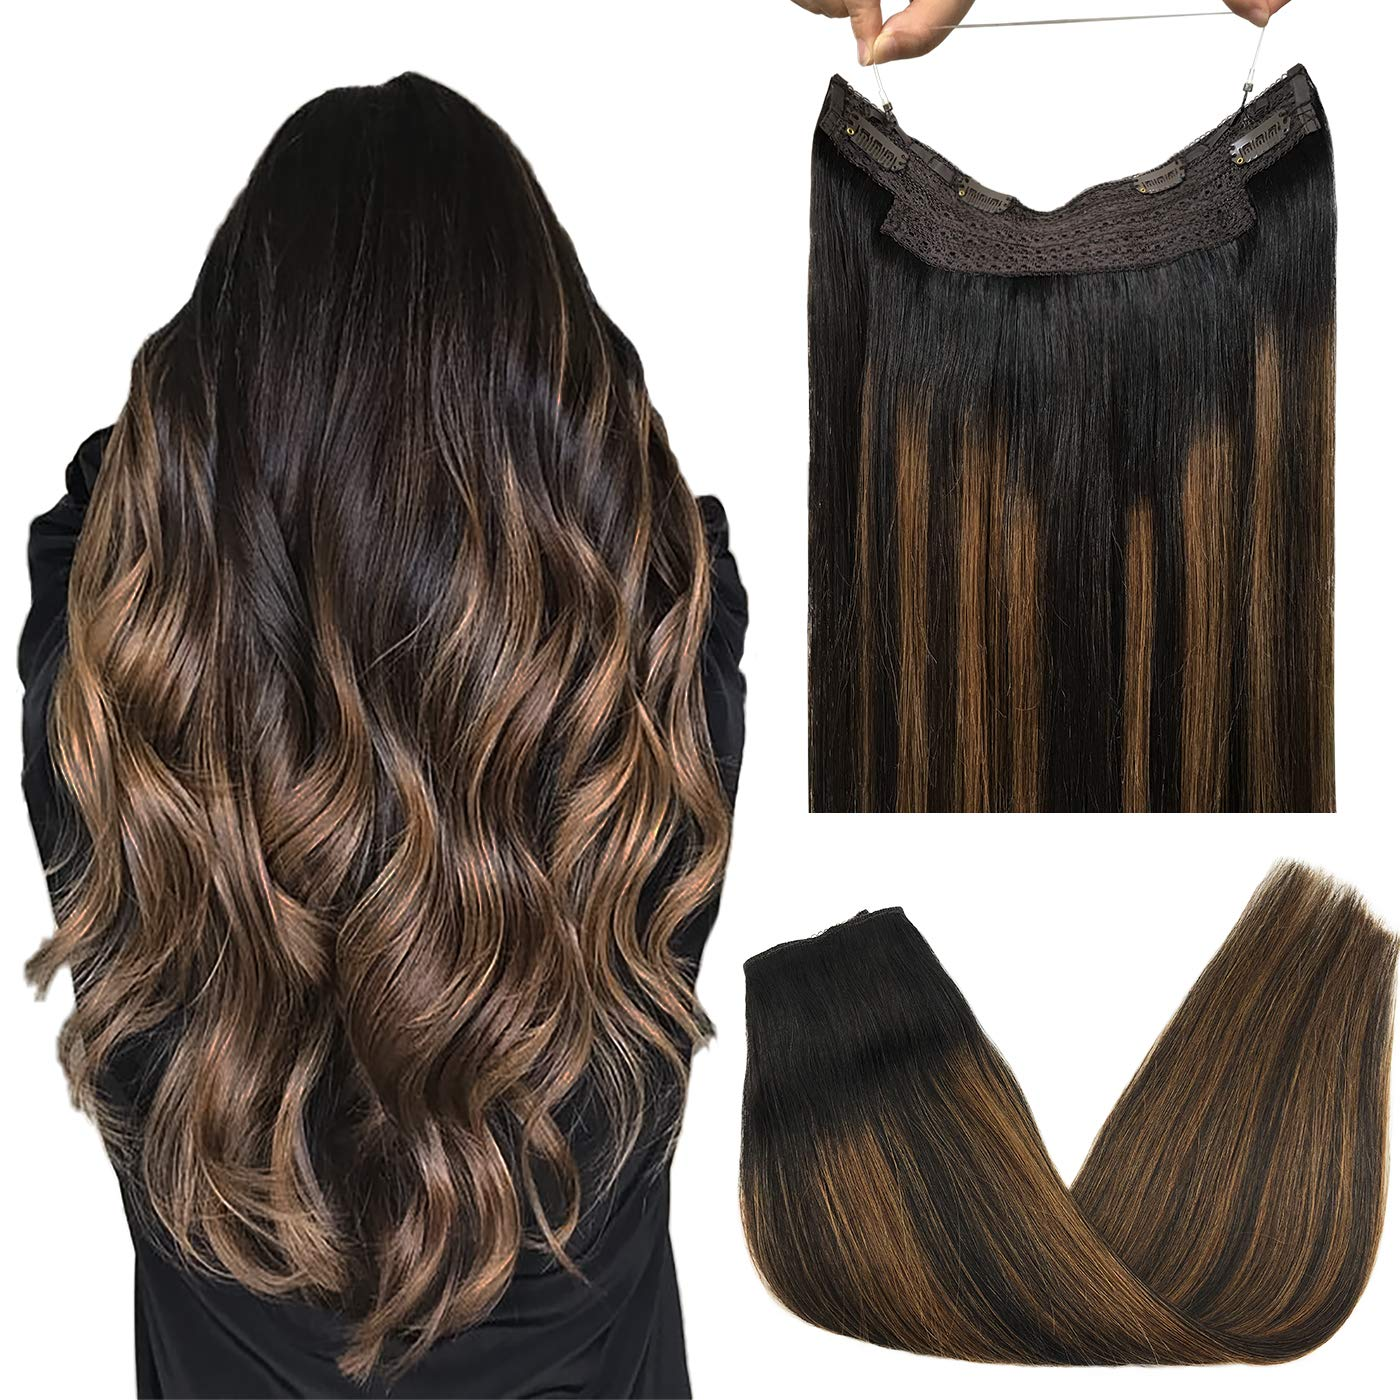 Fish Line Human Hair Extension Invisible Wire Hair Extensions Remy Hair Halo Hair Extensions Straight  Fishing Wire with 4Clips